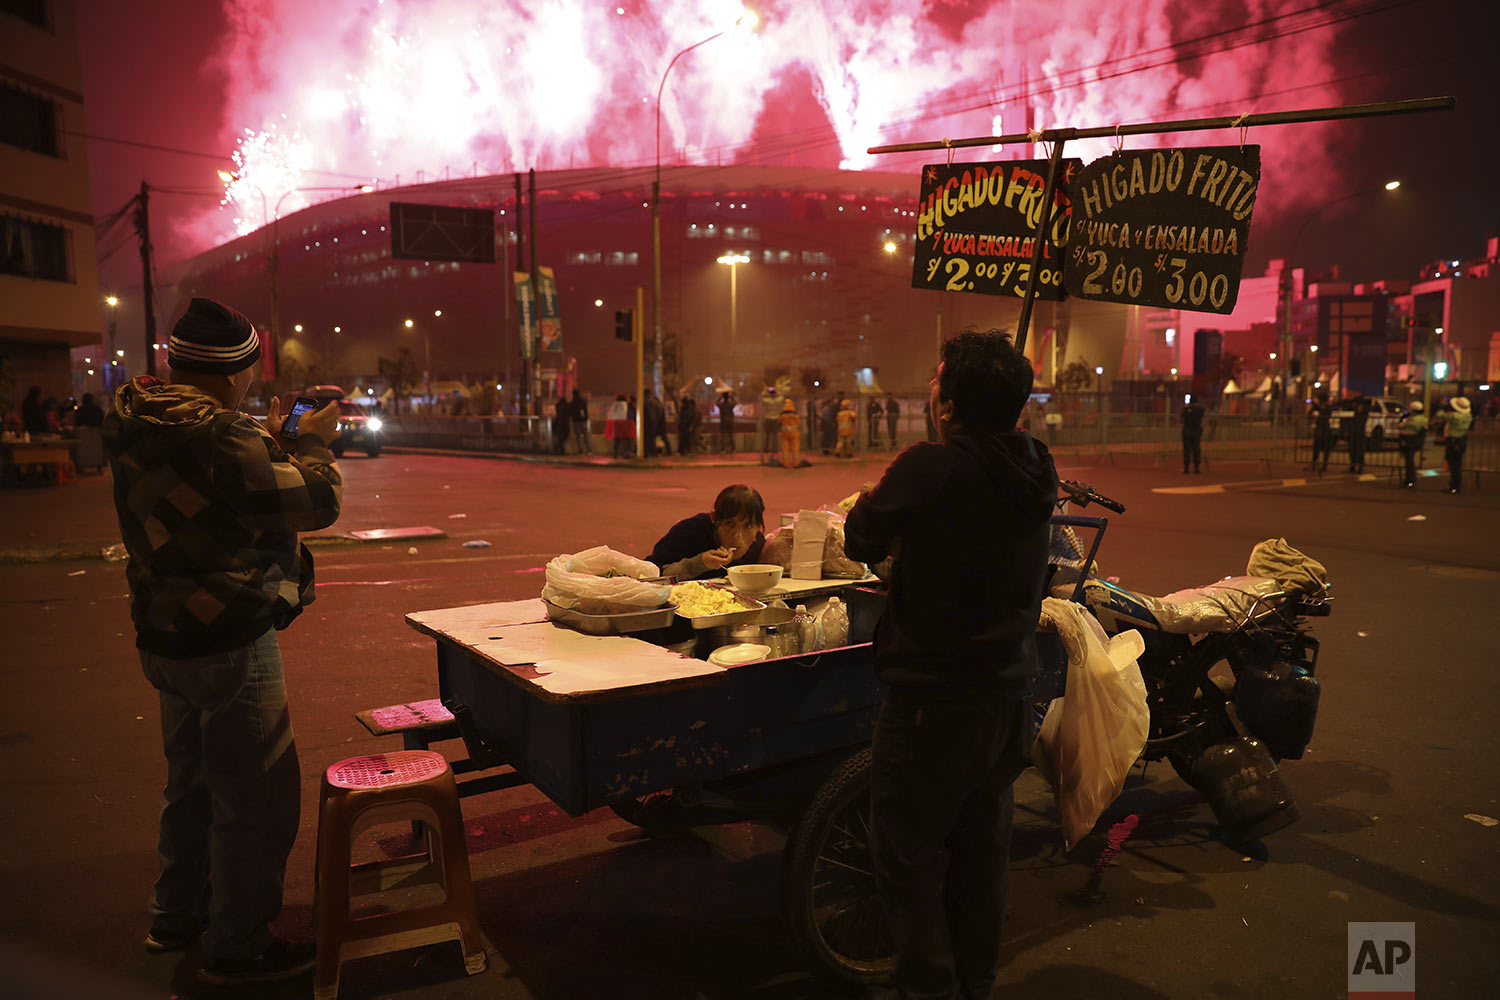 Vendors at a food stand watch fireworks exploding over the National stadium during the closing ceremony of the Pan American Games in Lima, Peru, Sunday, Aug. 11, 2019. (AP Photo/Rodrigo Abd)